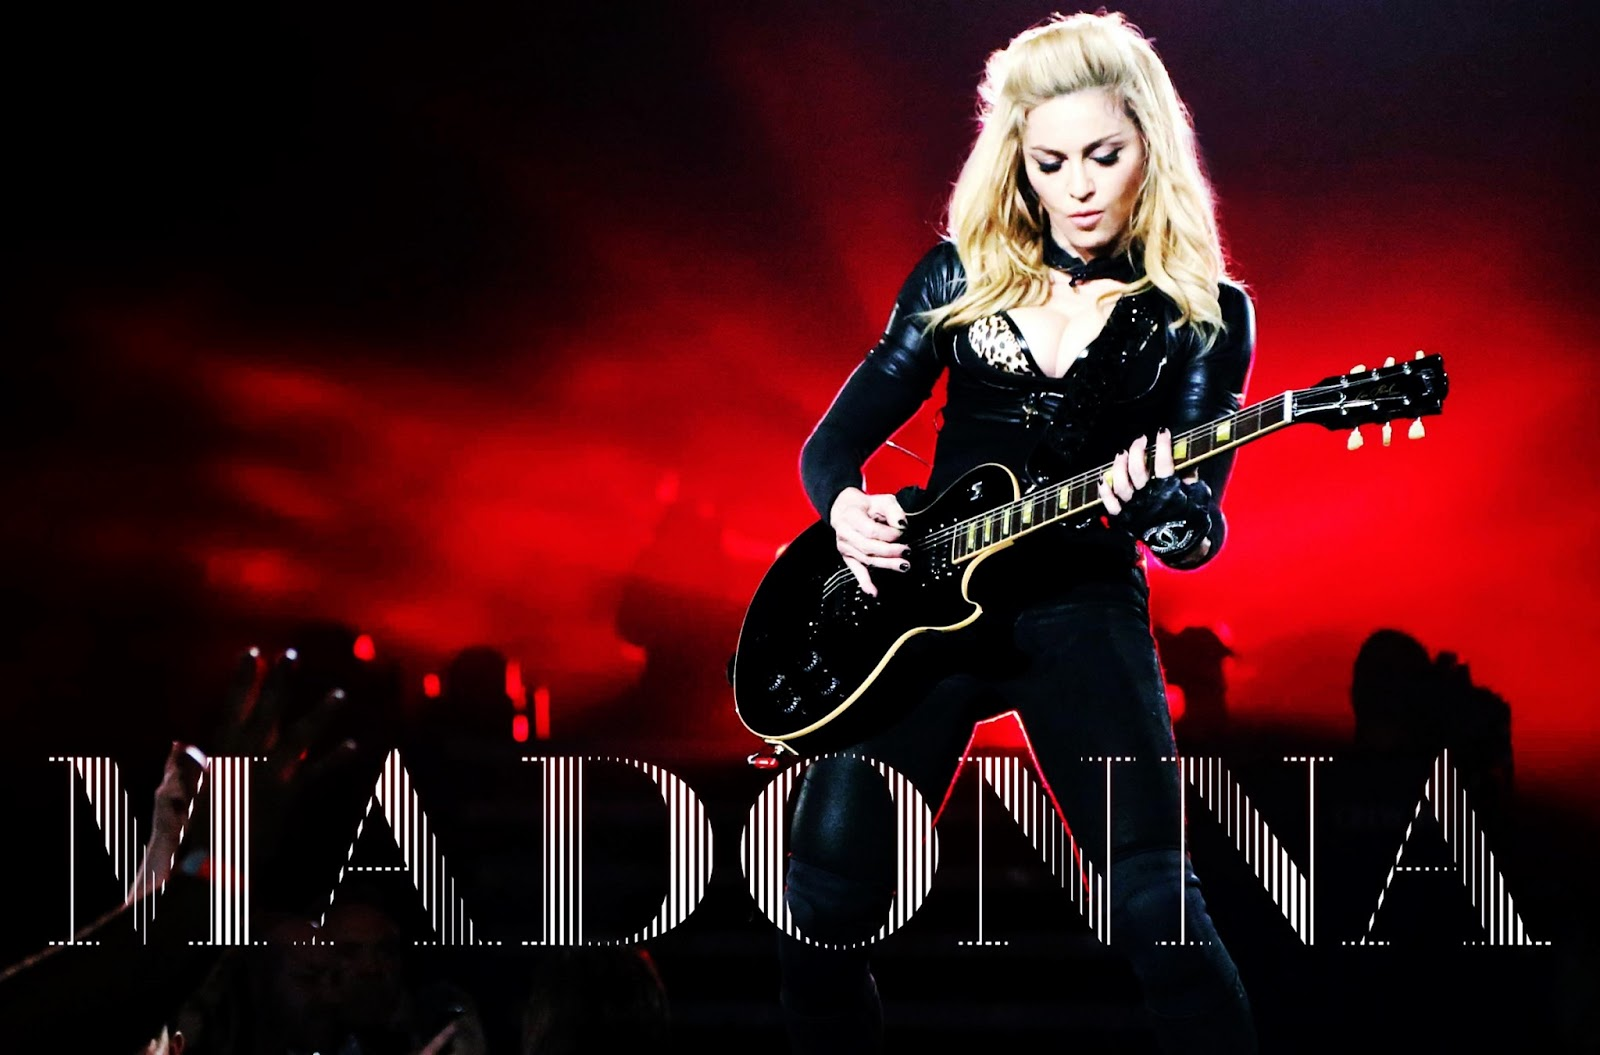 Madonna FanMade Covers The MDNA Tour   Wallpaper 1600x1055